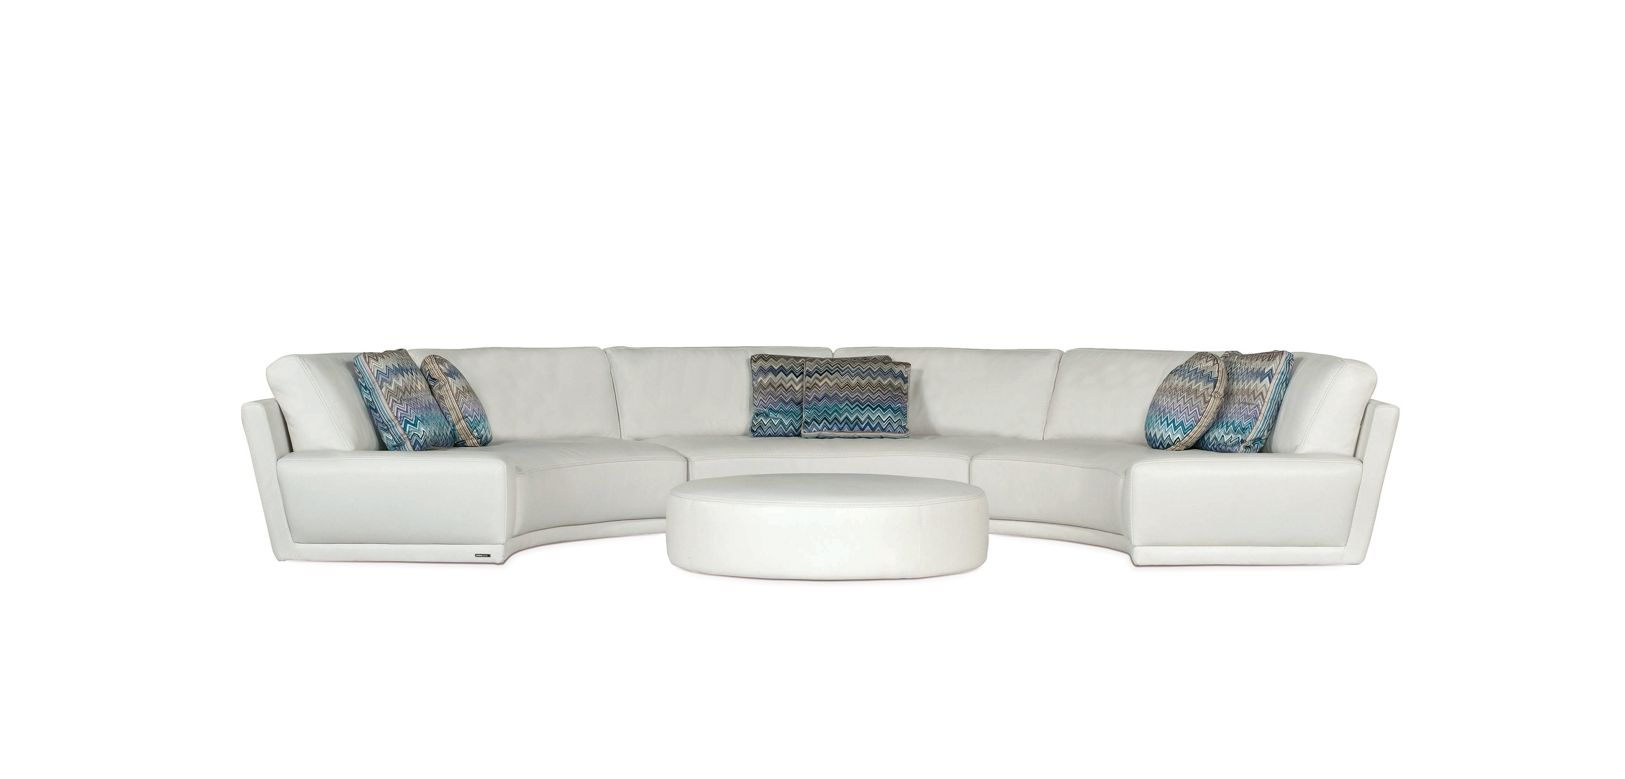 Canape D Angle Arrondi Of Canap Composable Arrondi Solstice Roche Bobois